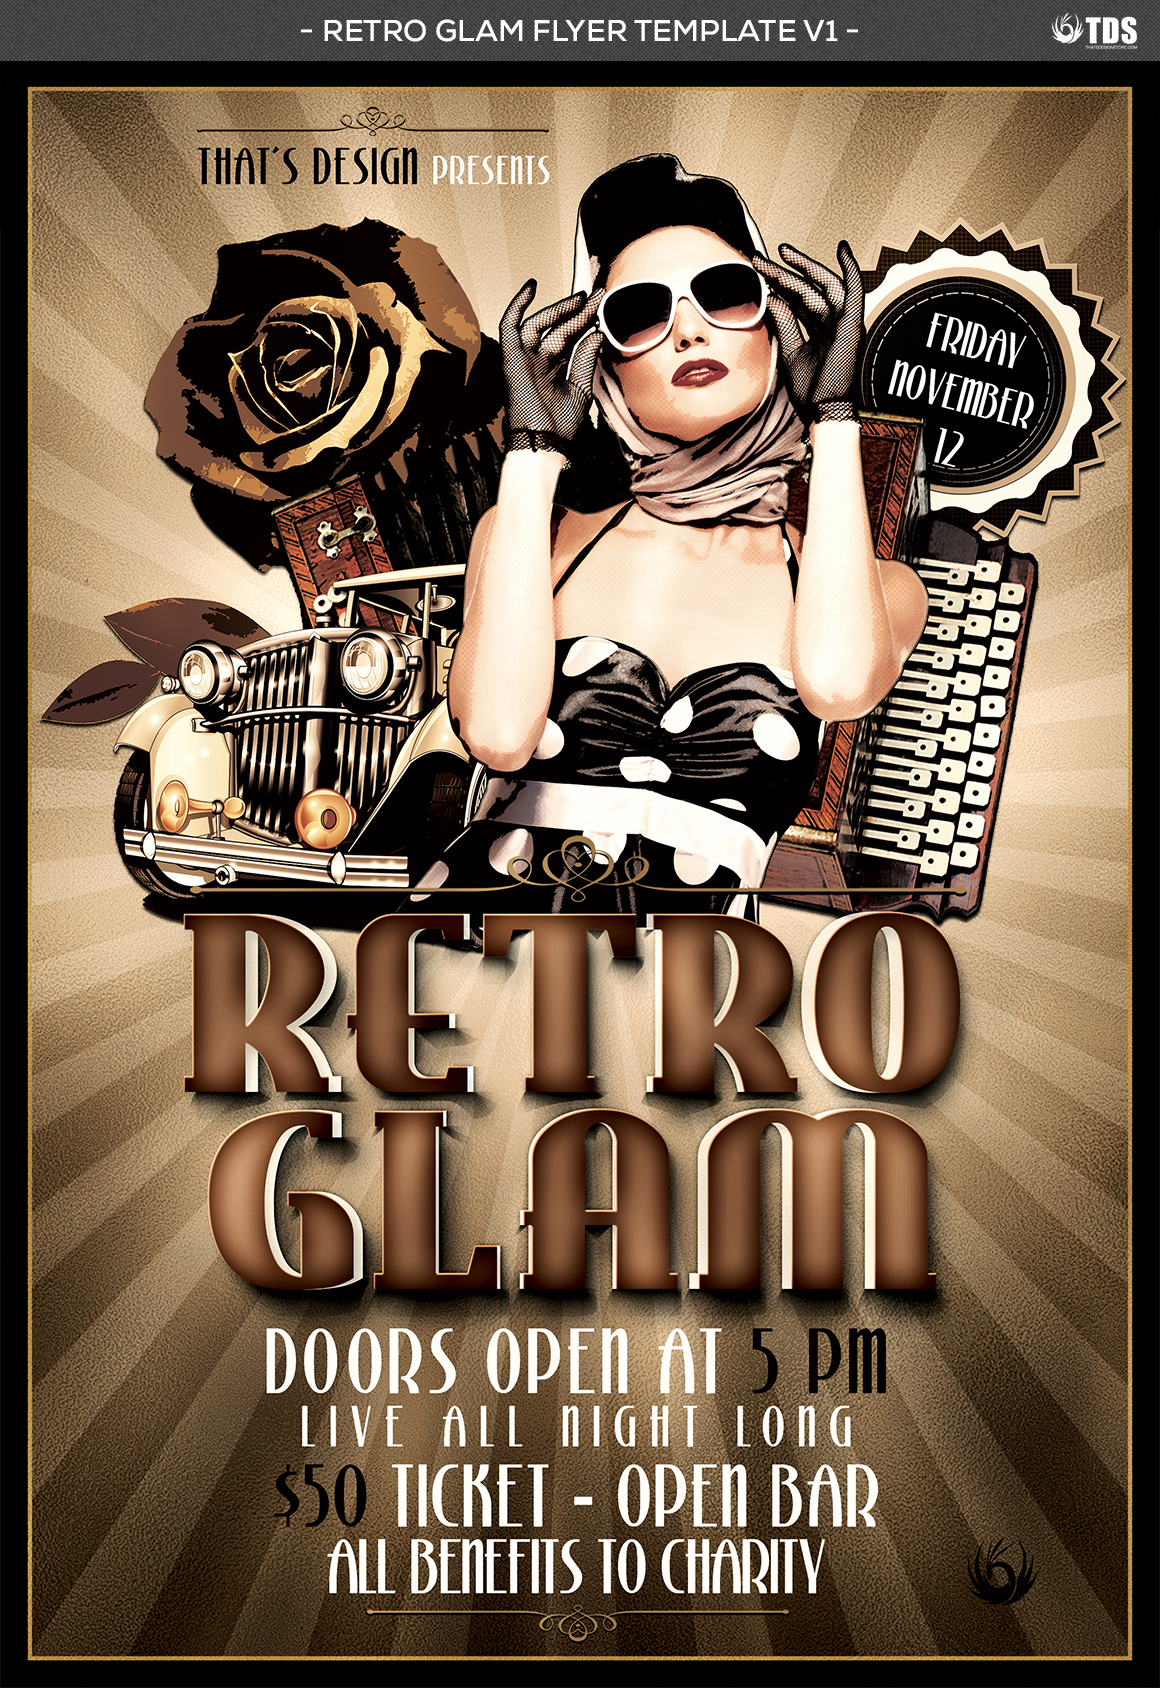 Retro Glam Flyer Template V1 example image 4